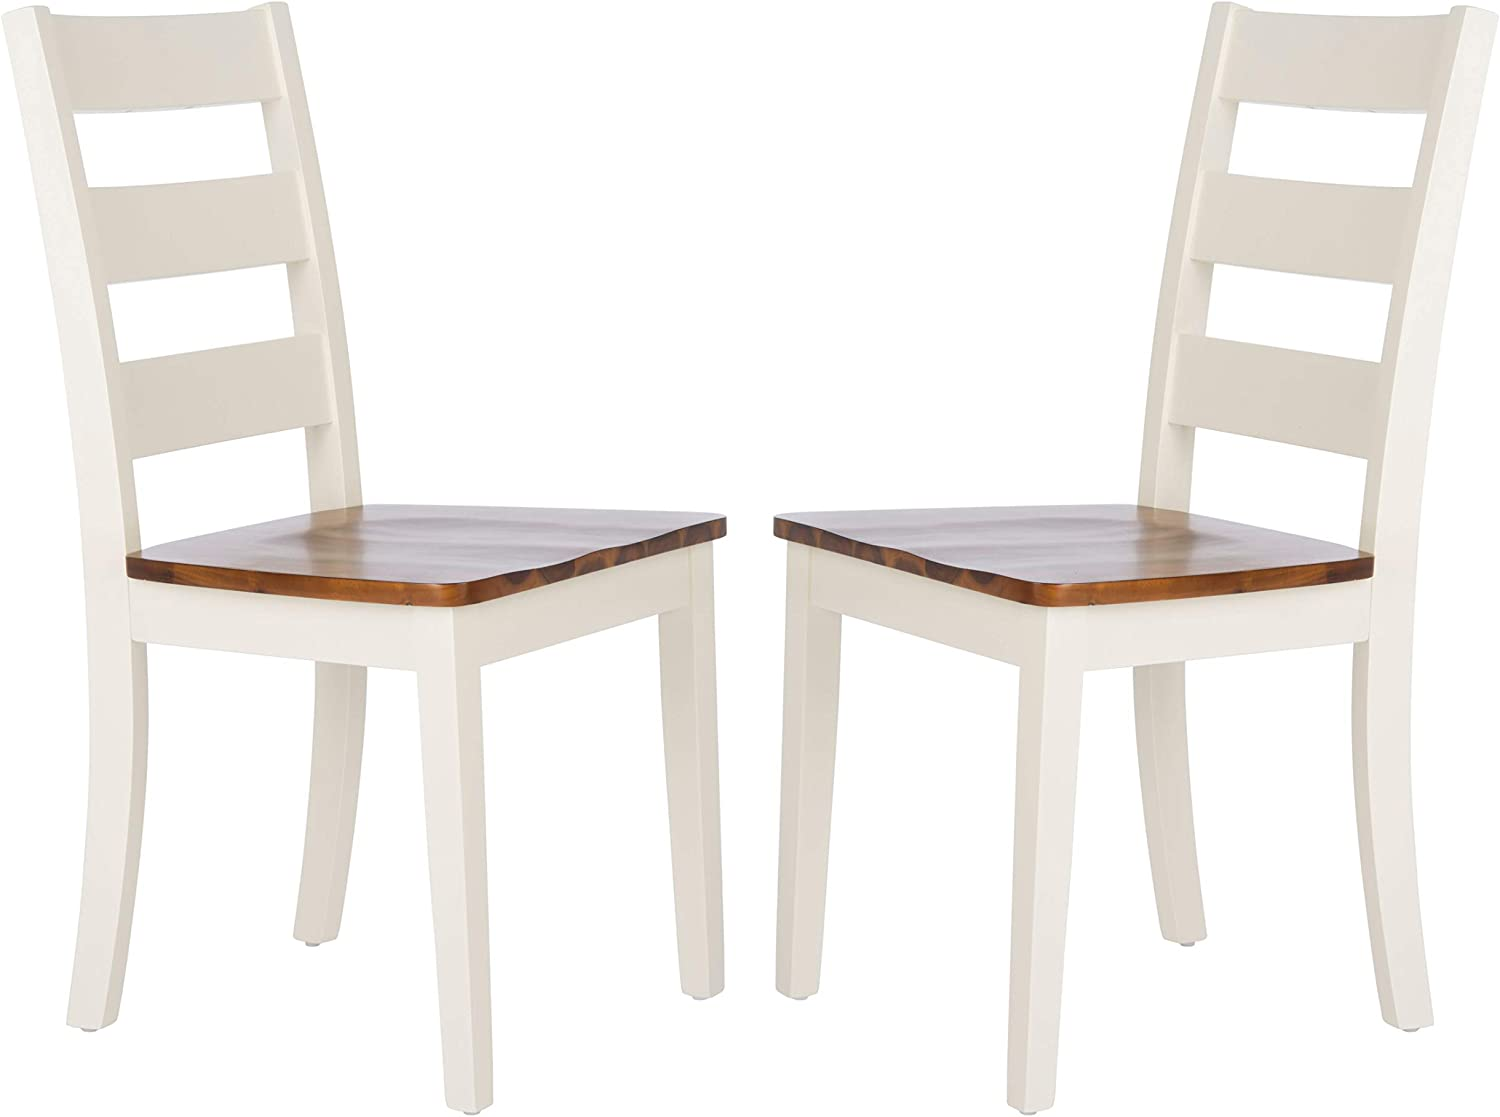 Safavieh Home Collection Silio White and Natural Ladder Back 18-inch Dining Chair (Set of 2)